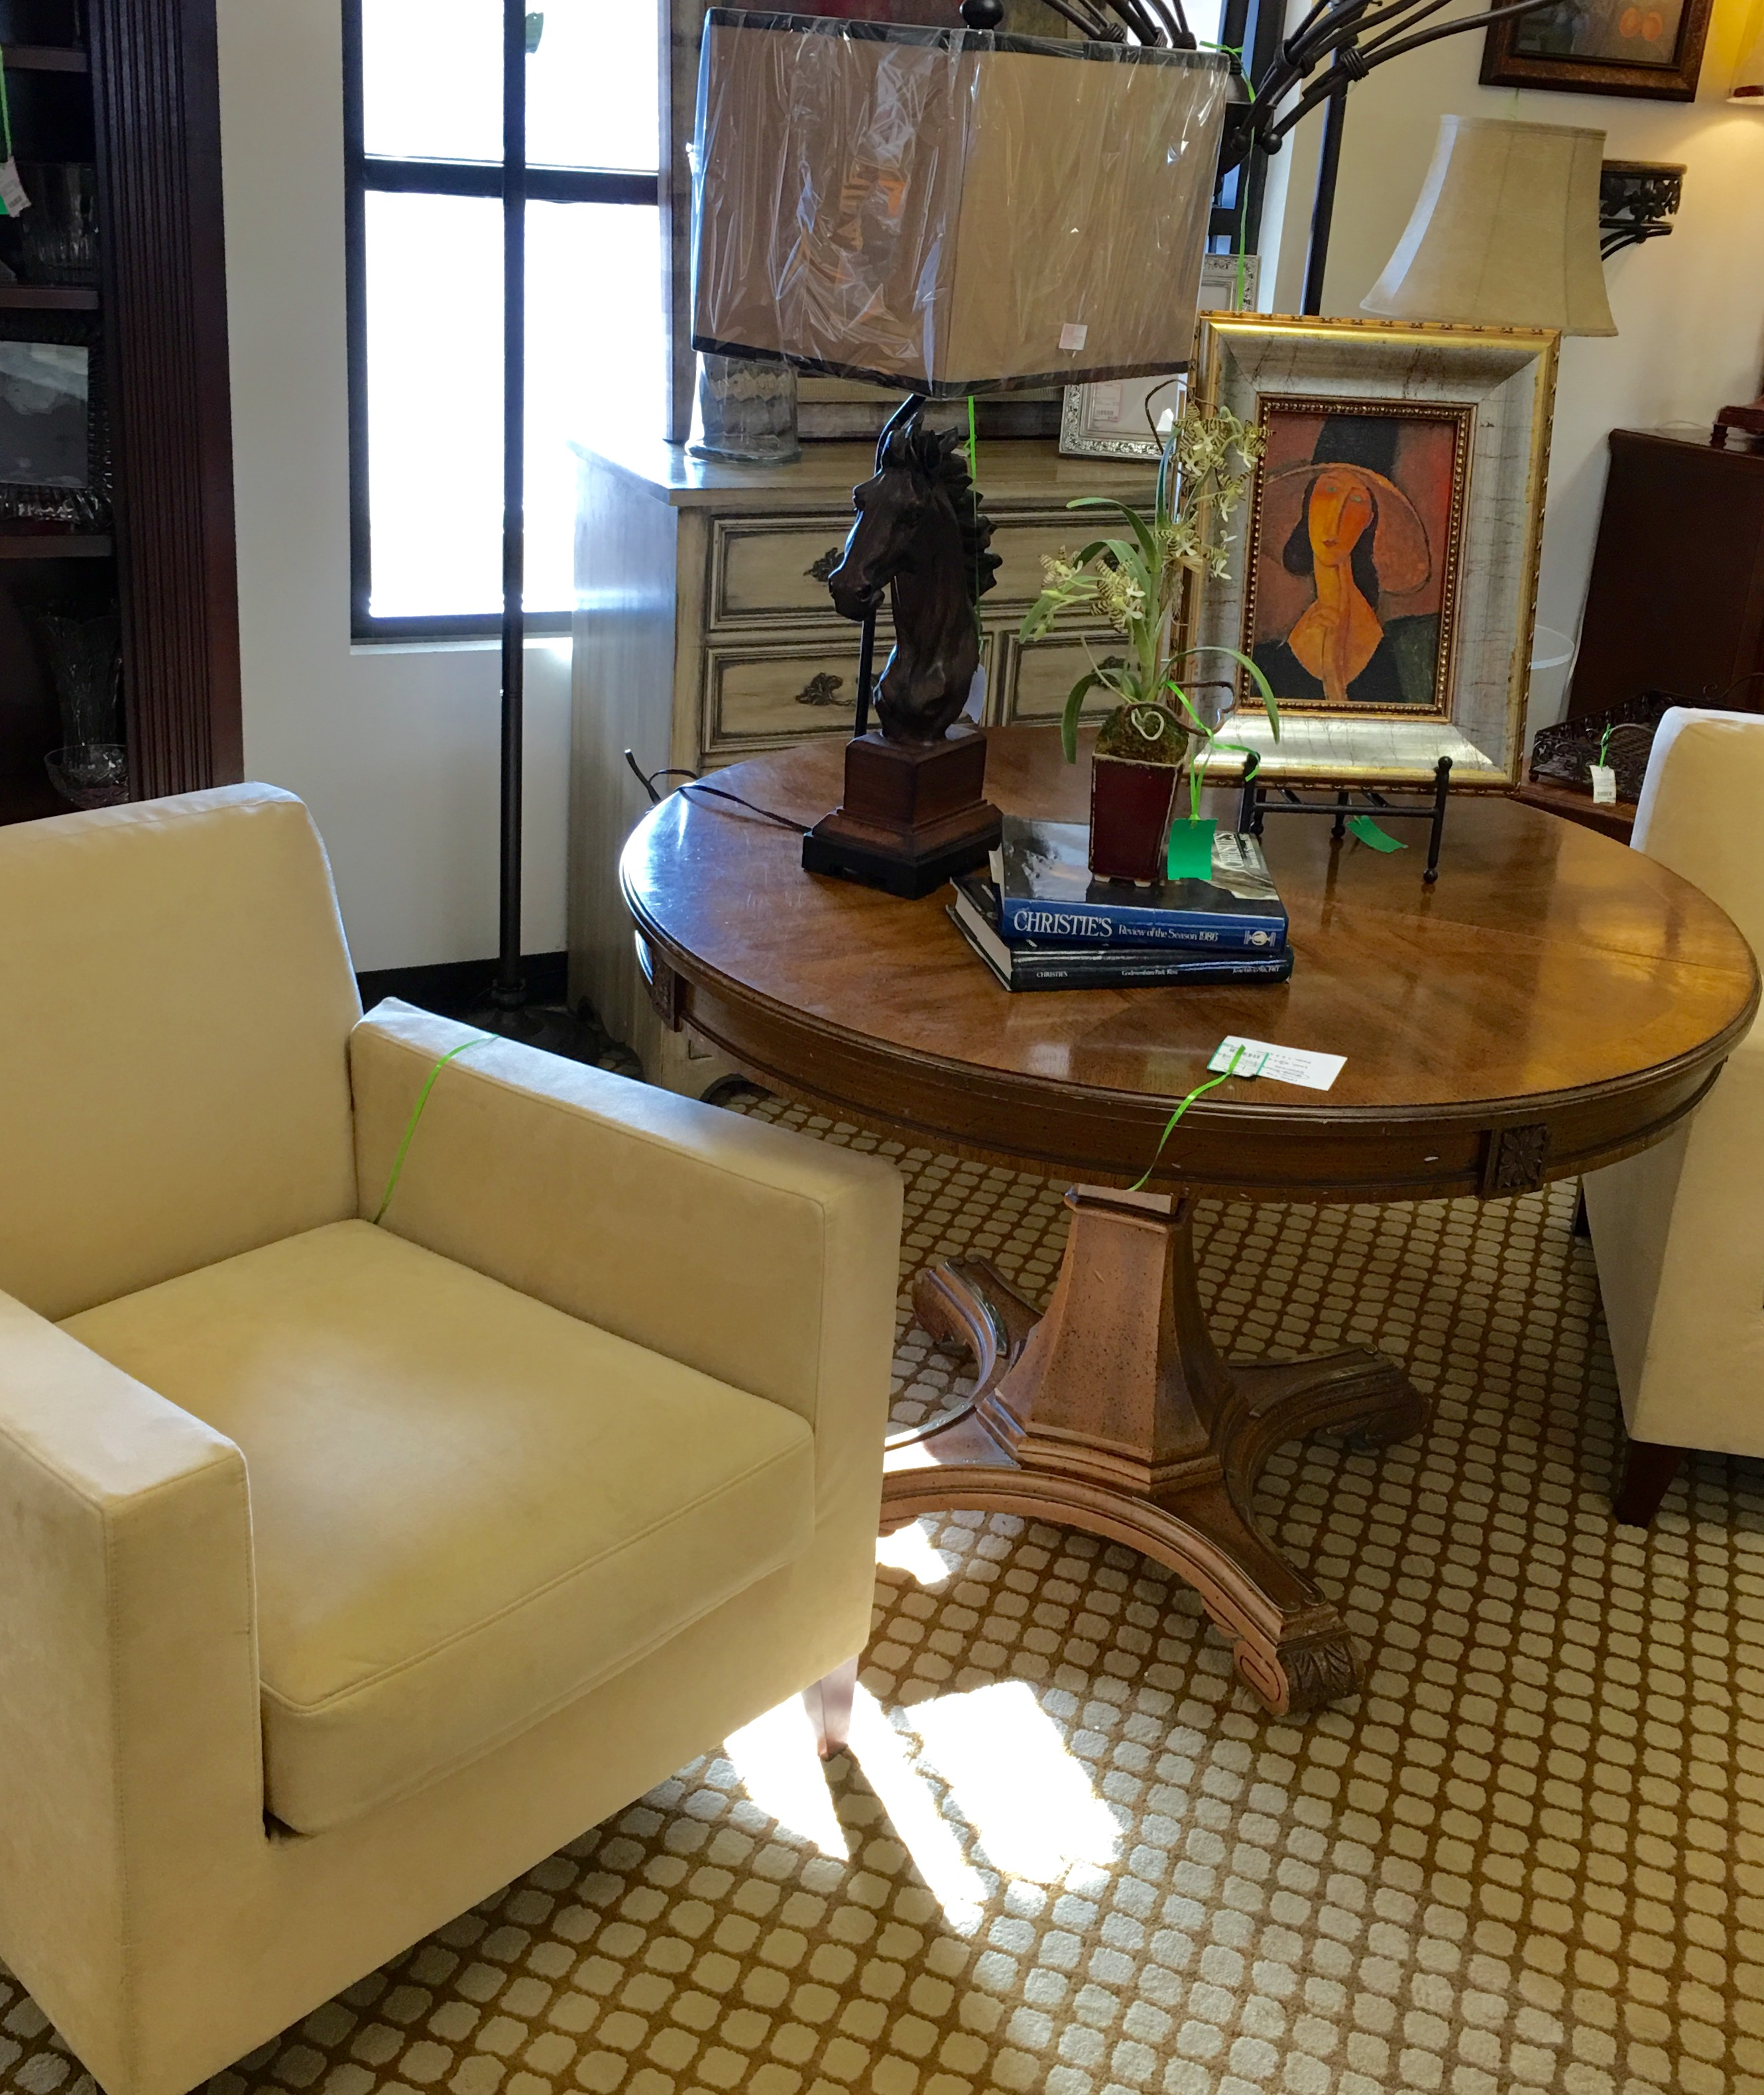 Consignment Furniture Suede Cream Chair And Round Table Eyedia Shop